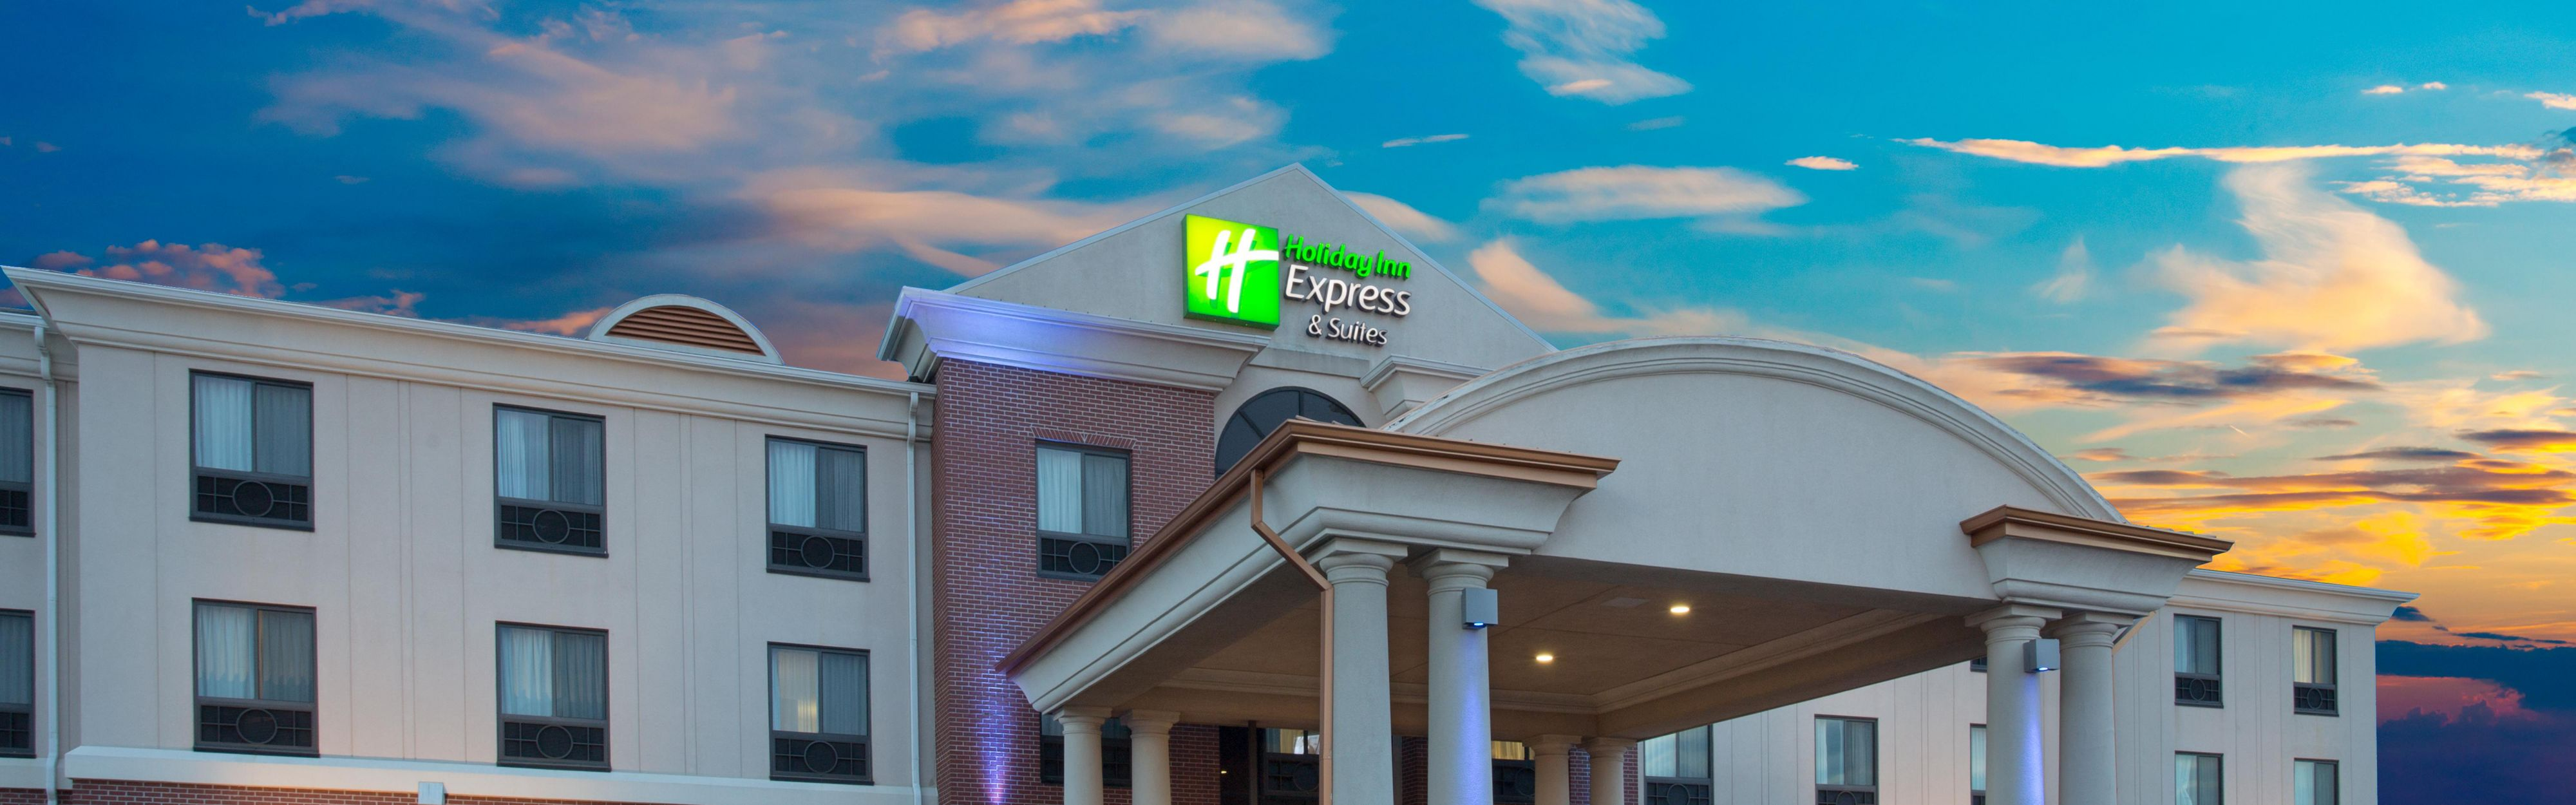 Holiday Inn Express & Suites Concordia US81 image 0